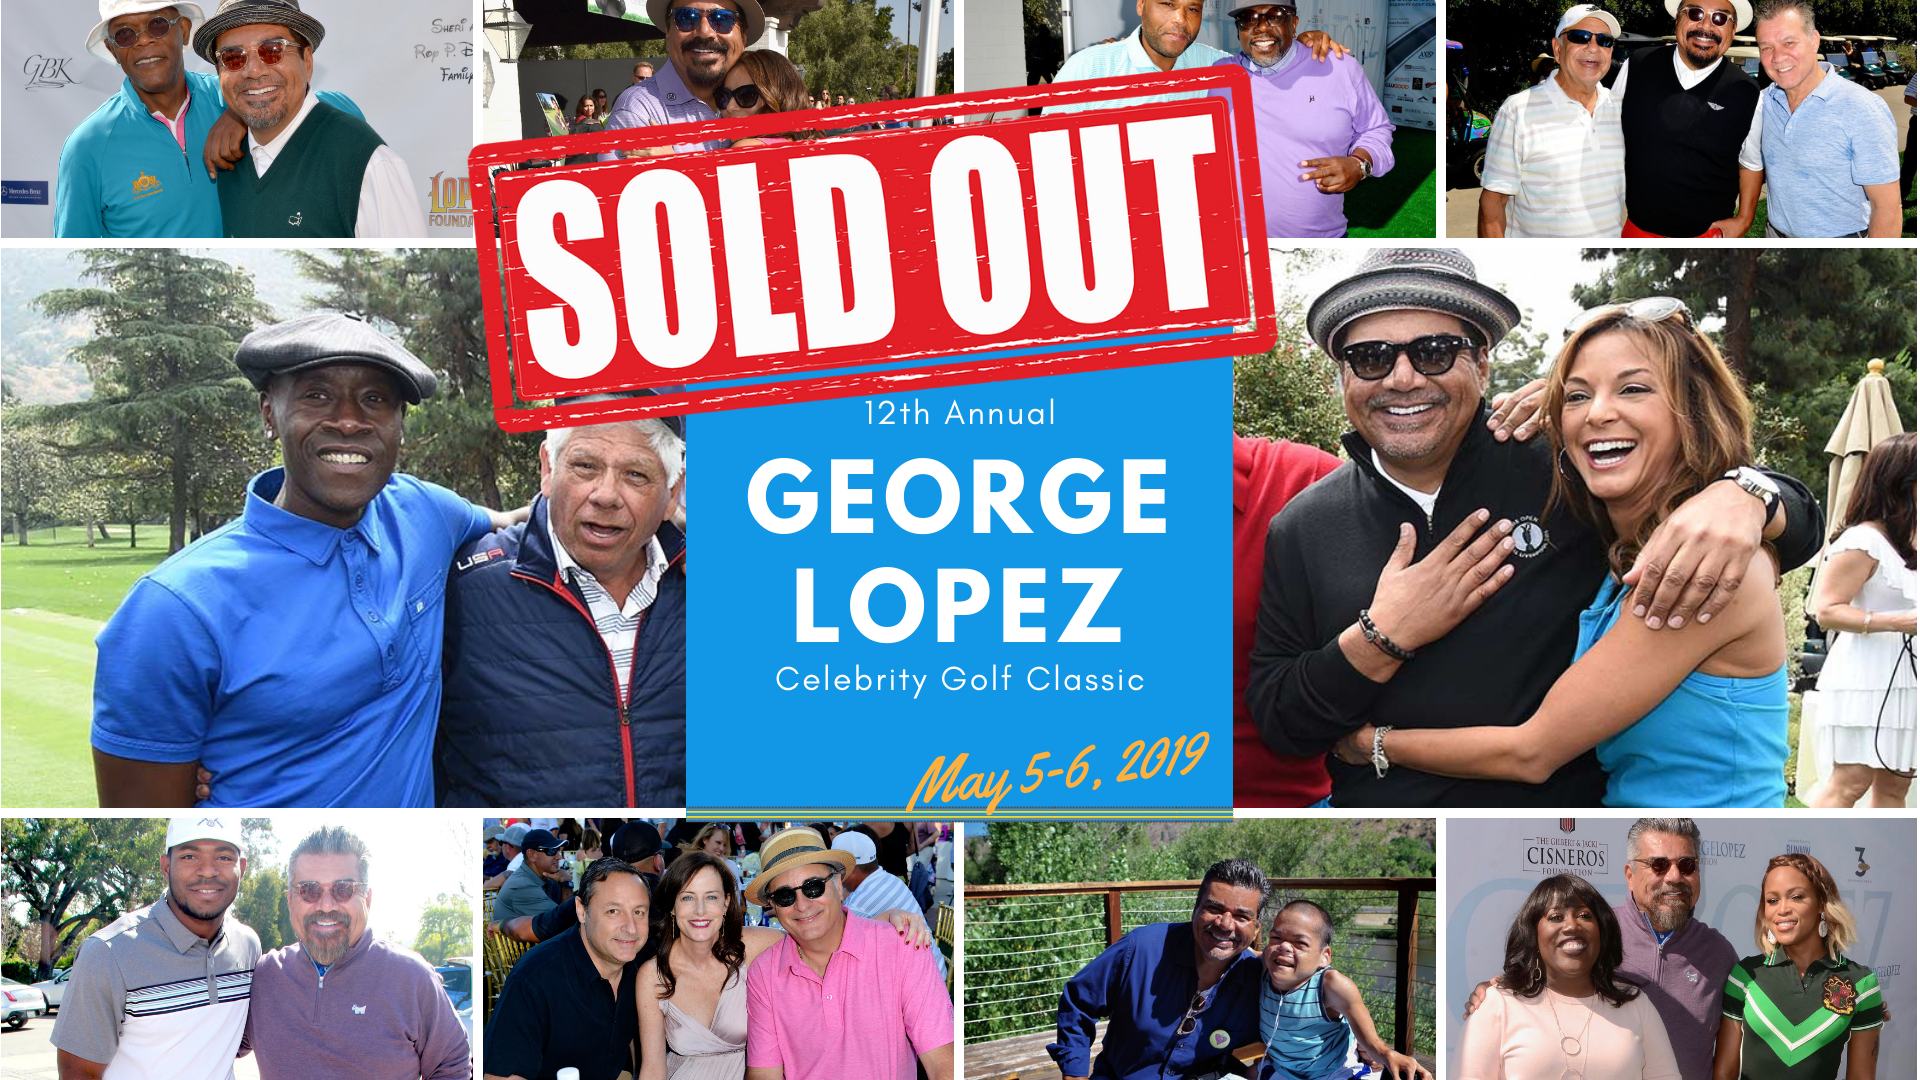 SOLD OUT 12th Annual George Lopez Celebrity Golf Classic 2019.png